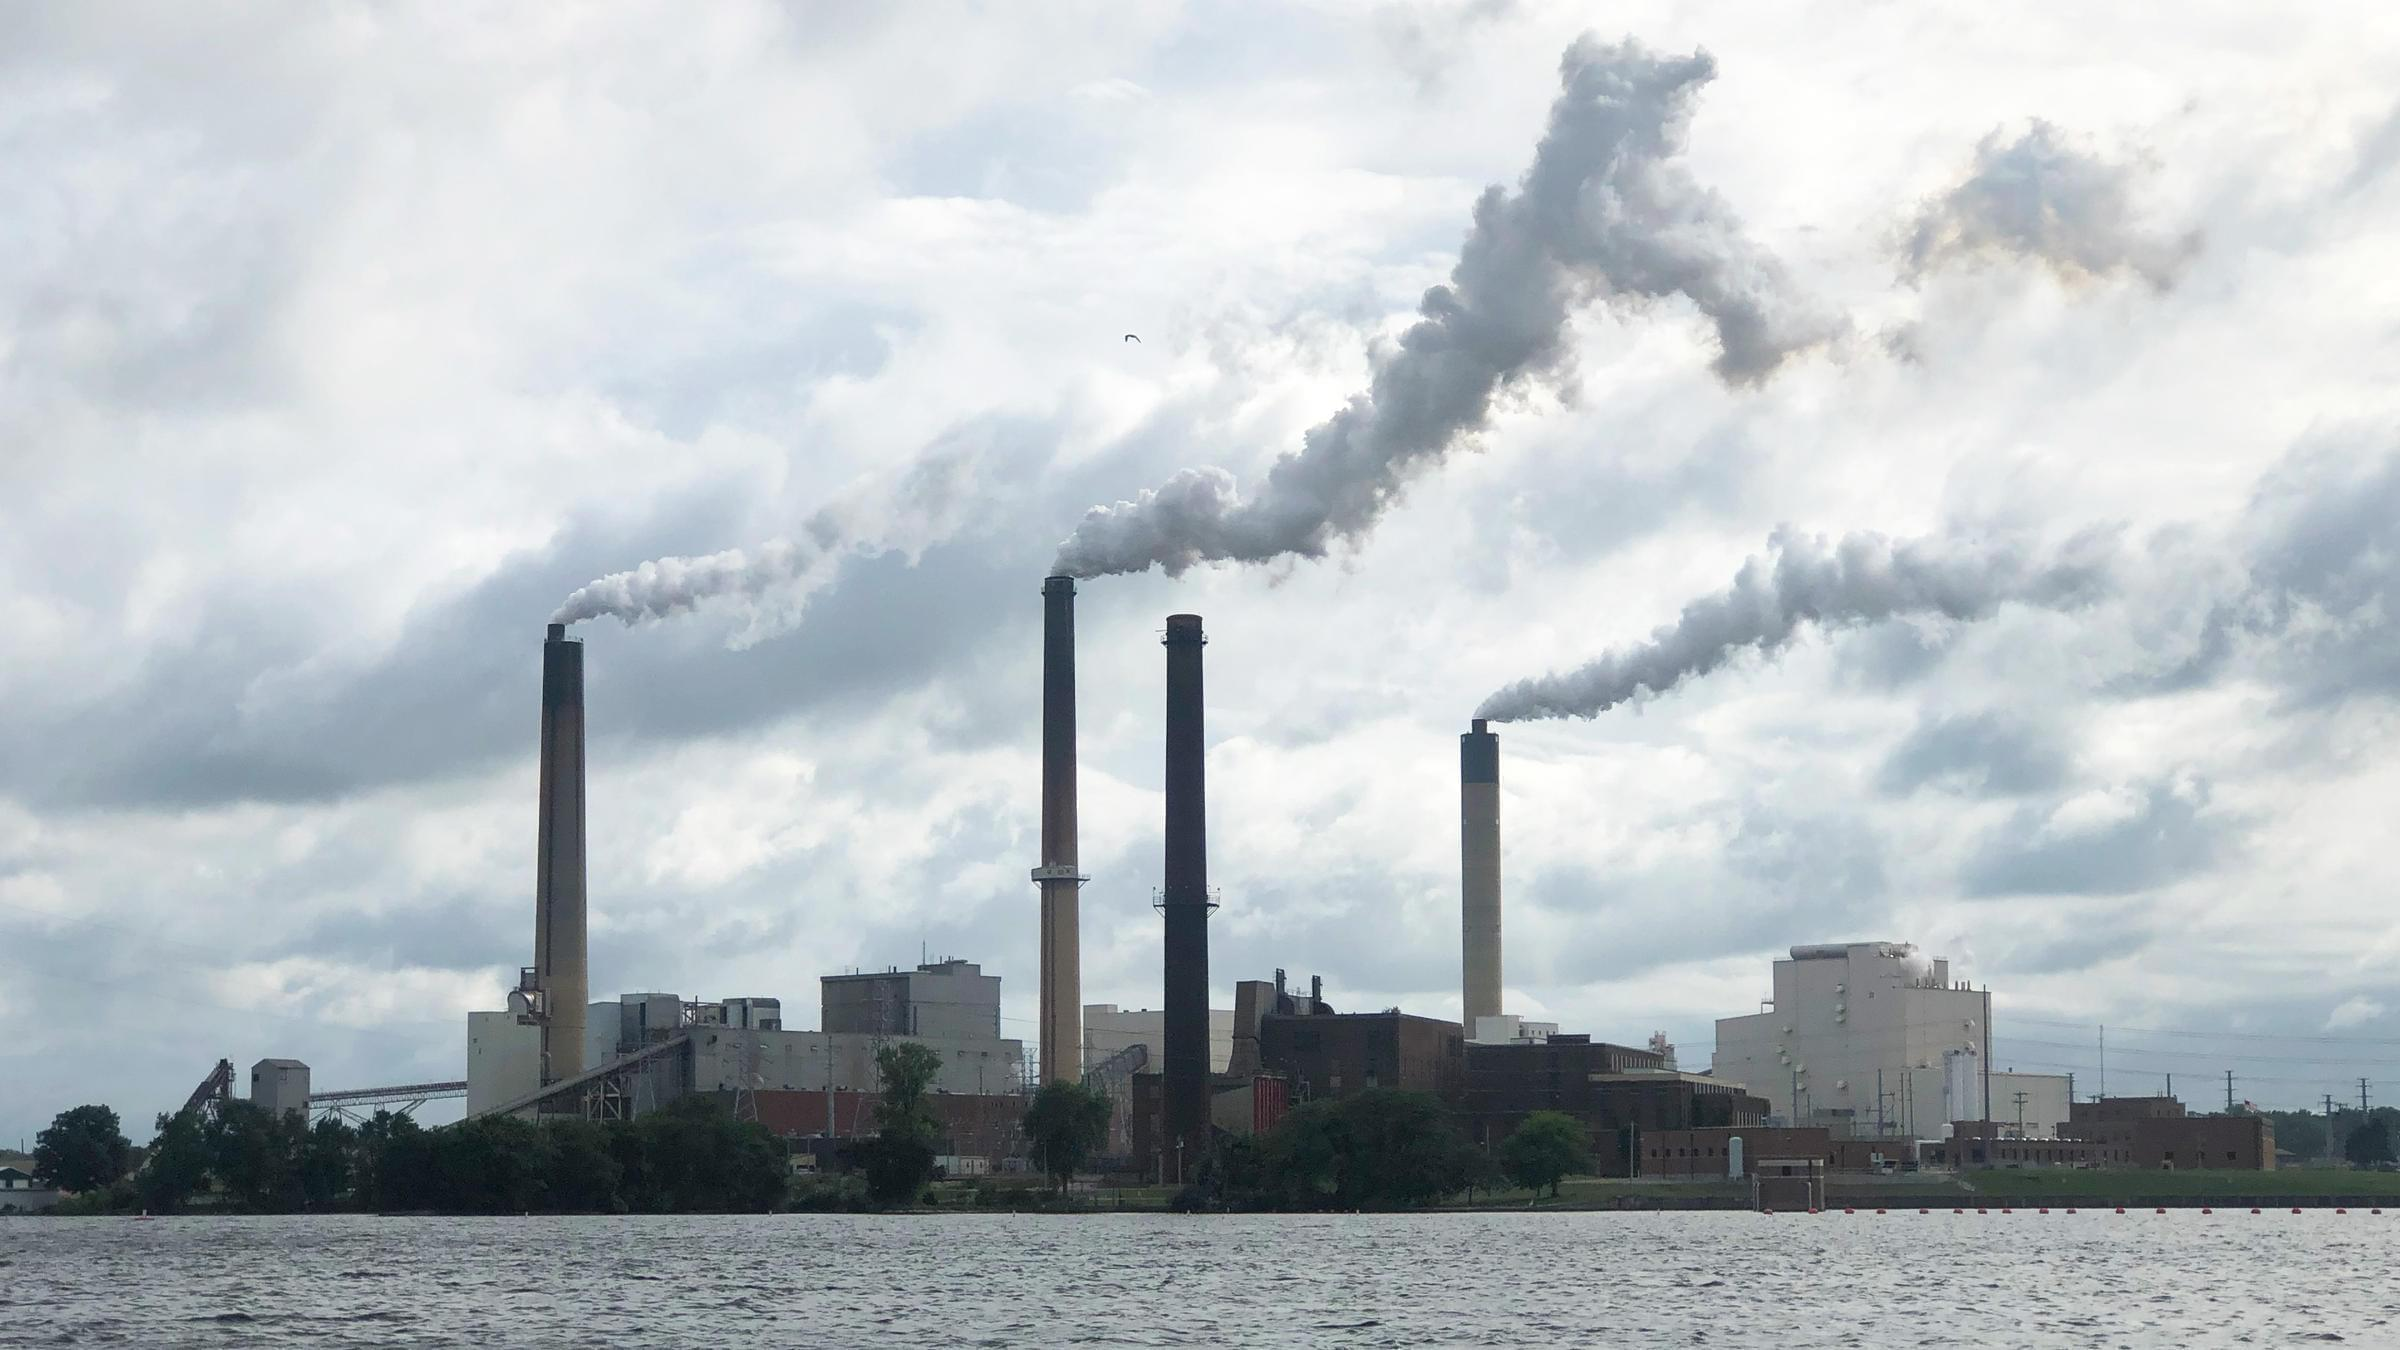 Springfield is the only city in Illinois to run its own coal plant - City Water, Light and Power, which sits on Lake Springfield.